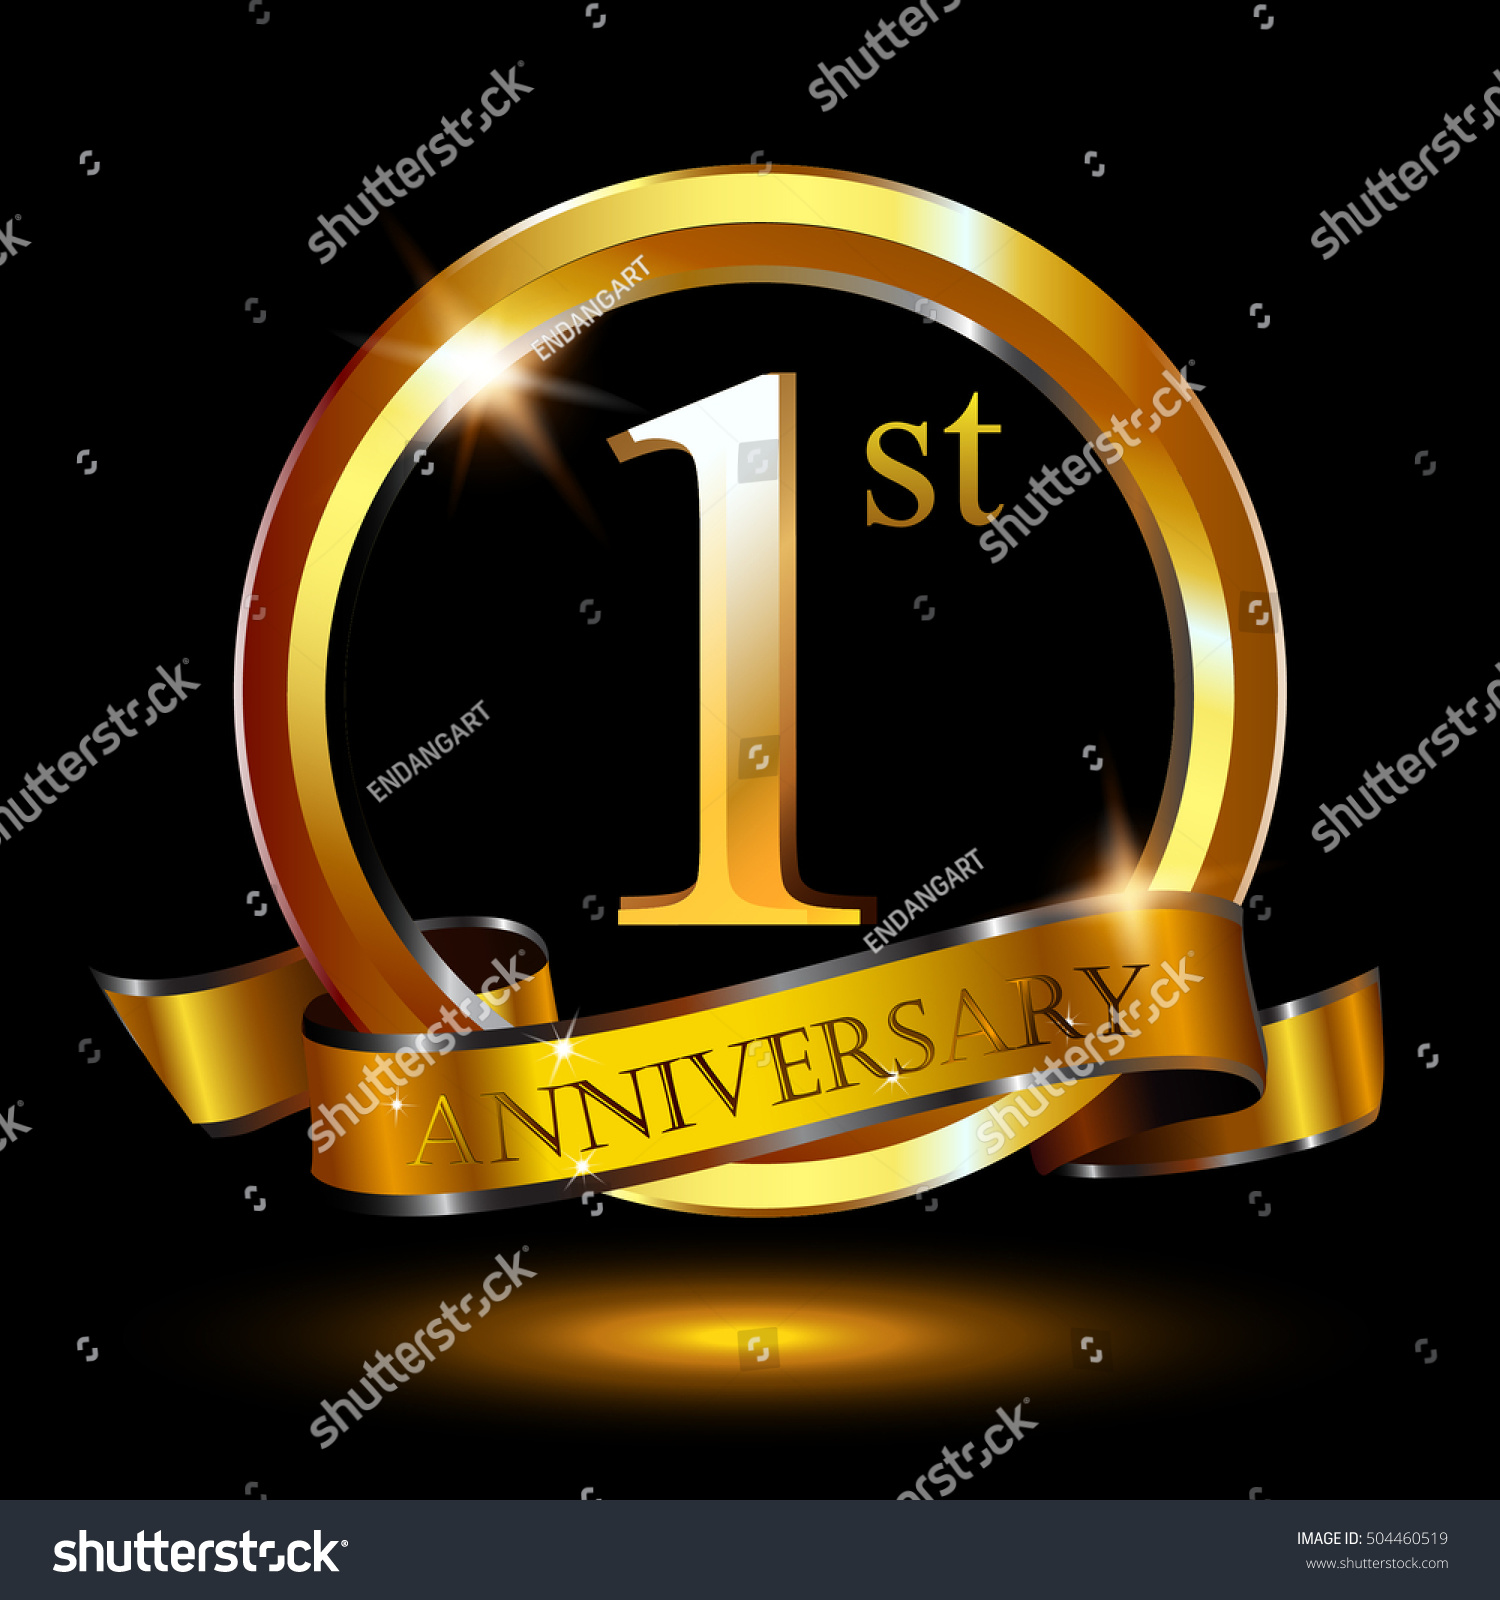 St golden anniversary logo year stock vector